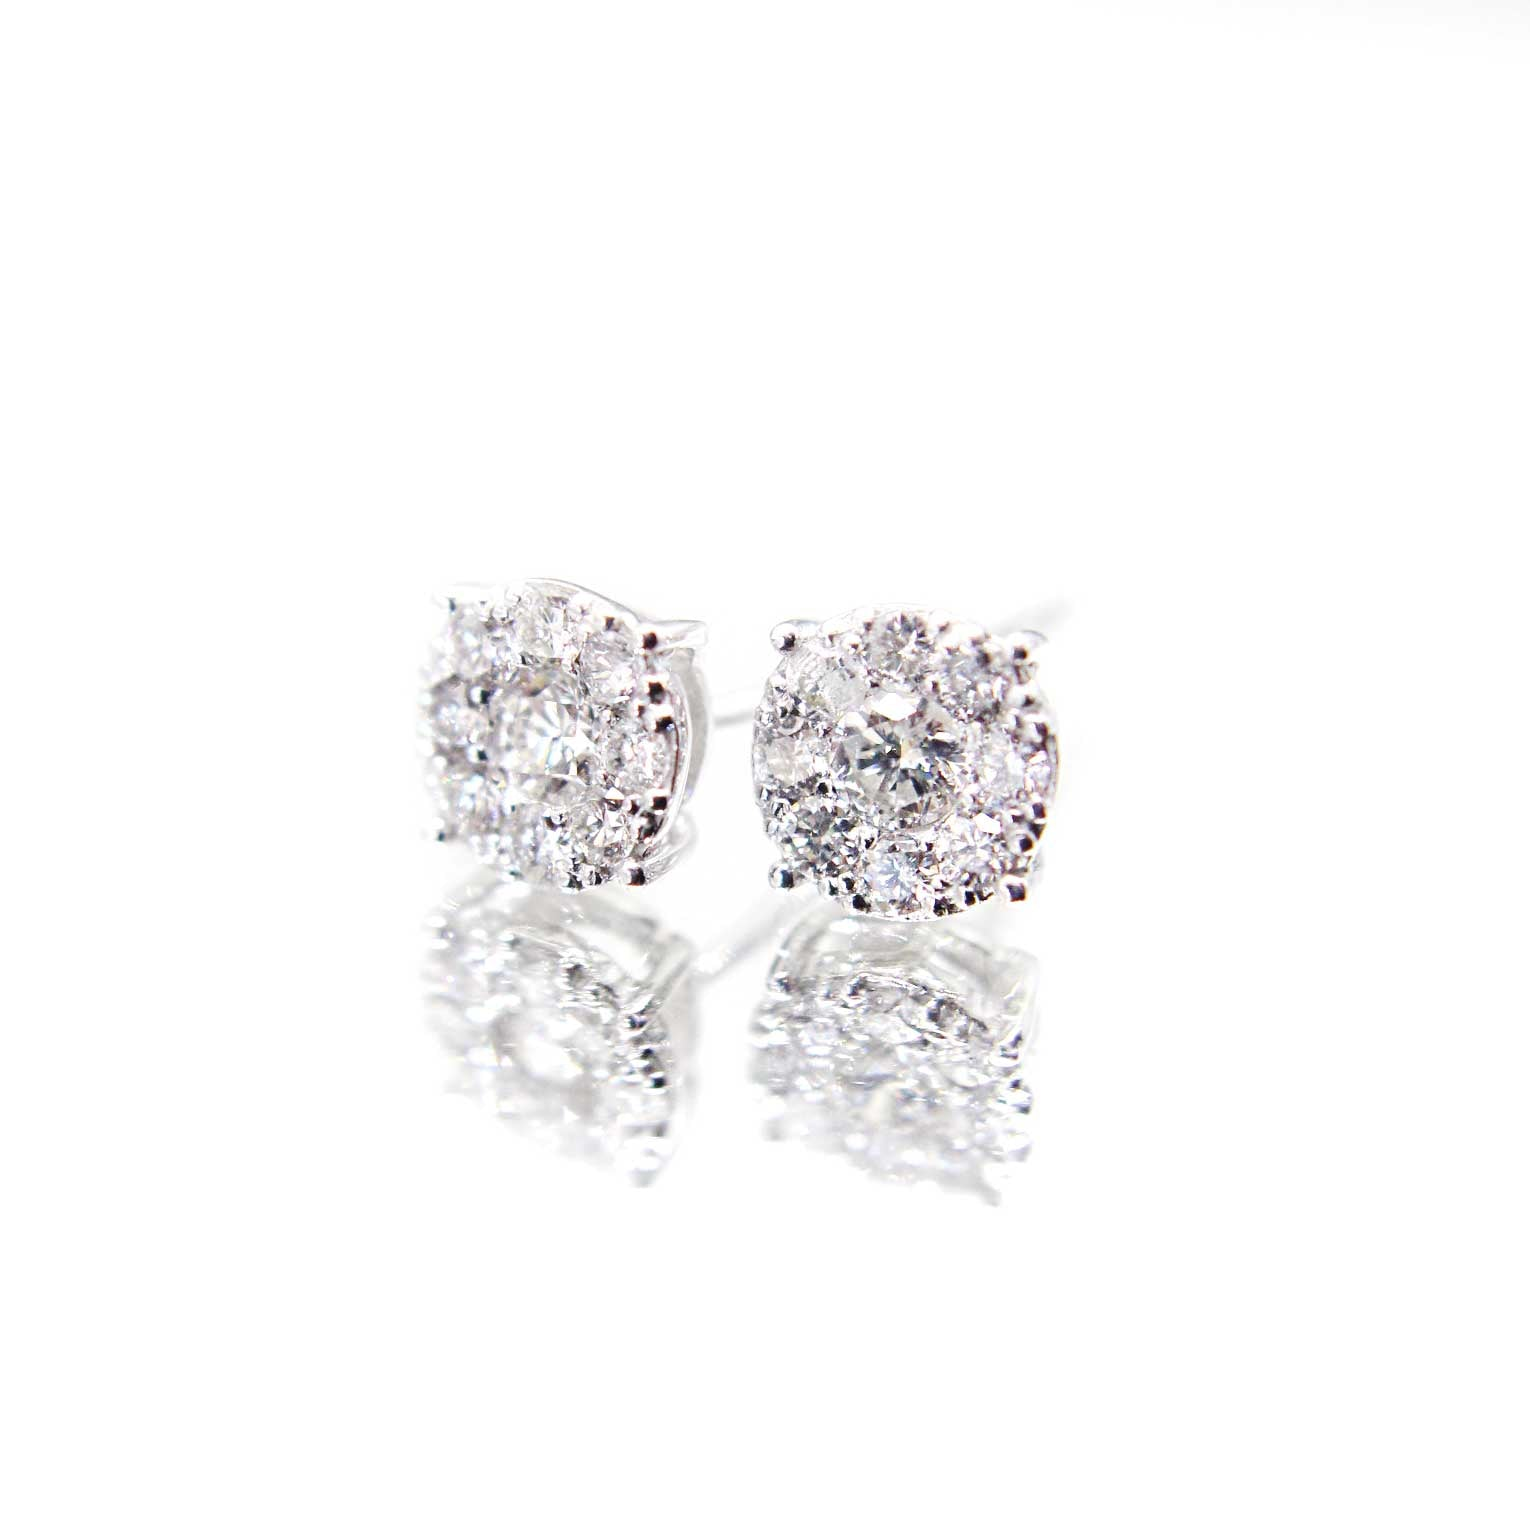 Diamond Series - Earrings - Ariel Studs (0.4 Carats, 18K White Gold)